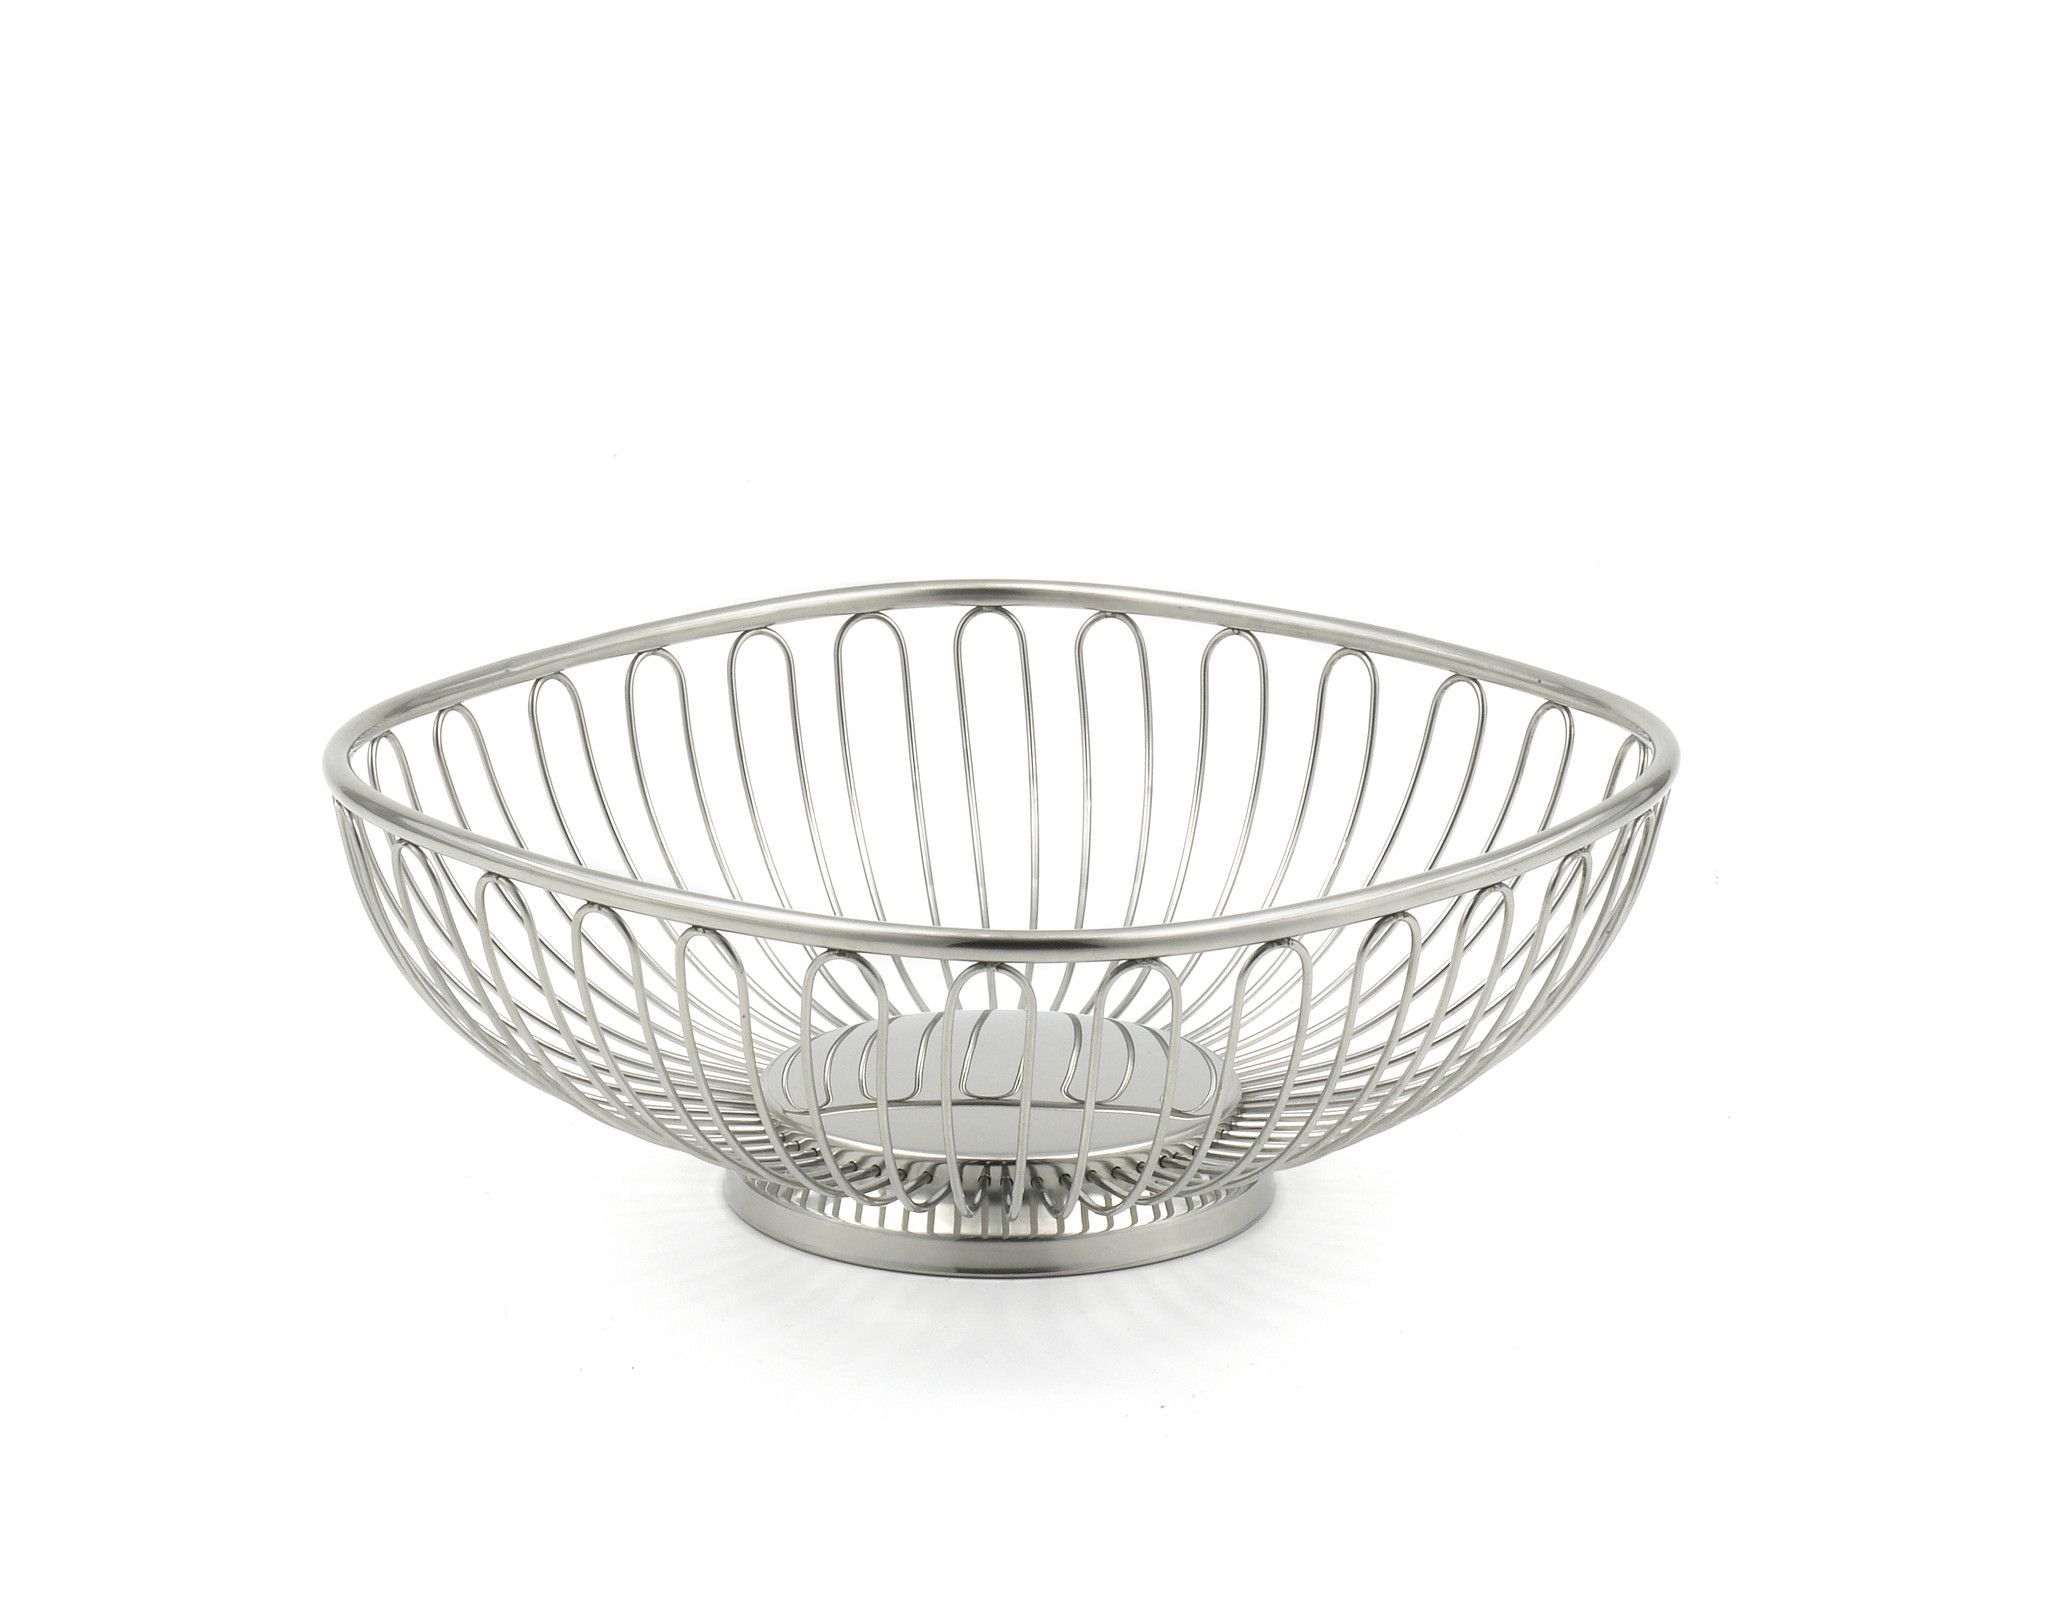 Wire Fruit Bowls Stainlesslux 76303 Small Square Stainless Steel Wire Basket